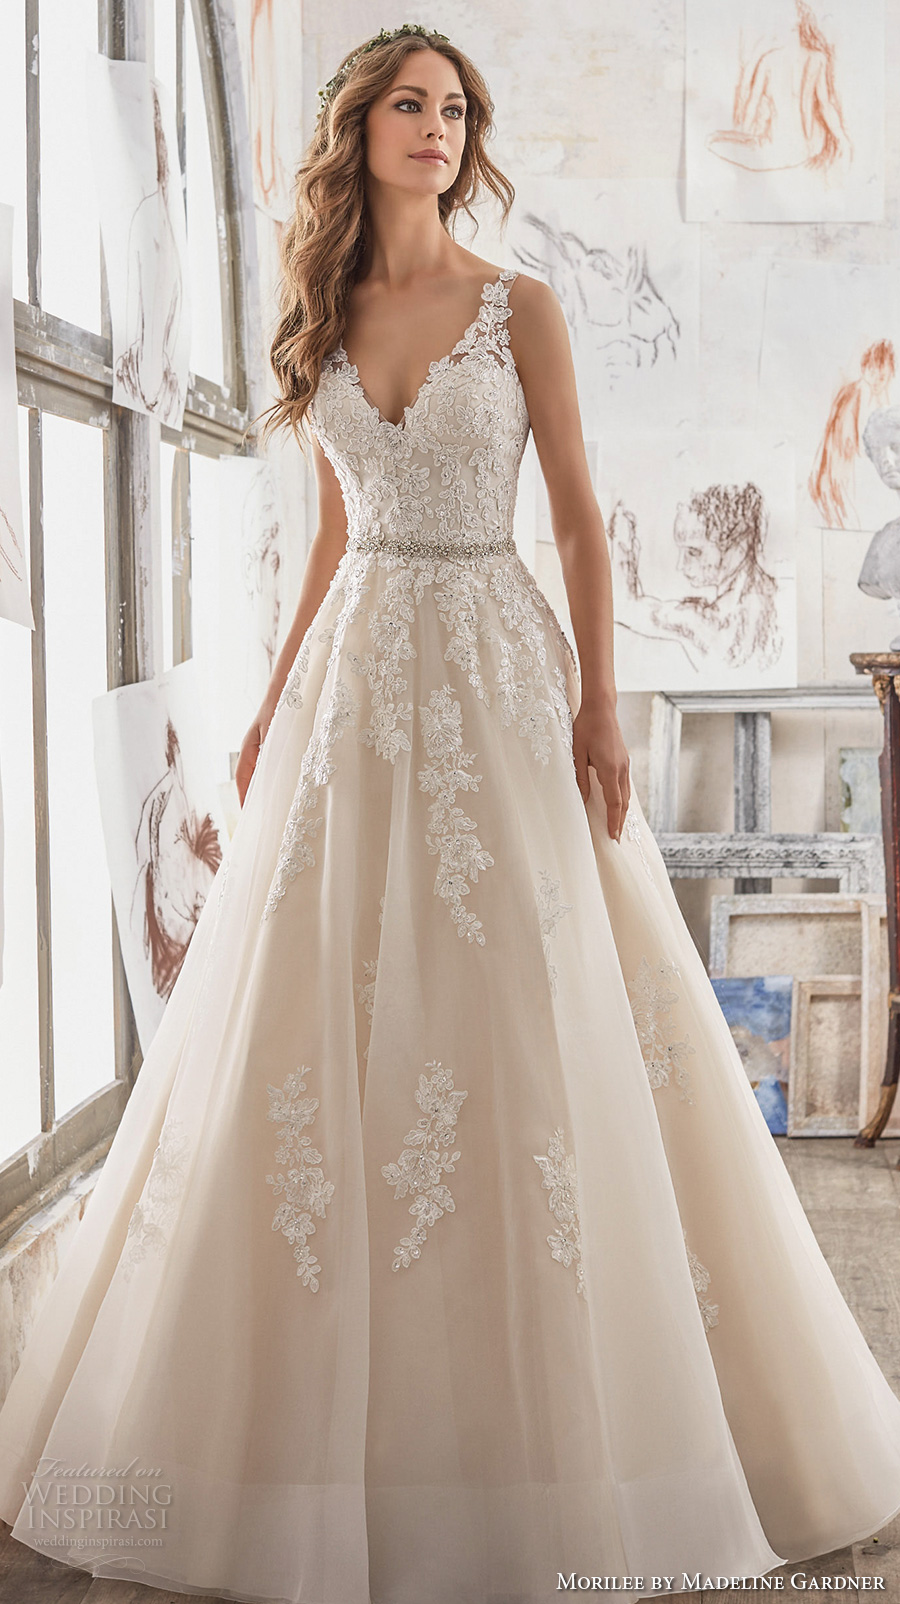 Morilee by madeline gardner spring 2017 wedding dresses for Dress for a spring wedding